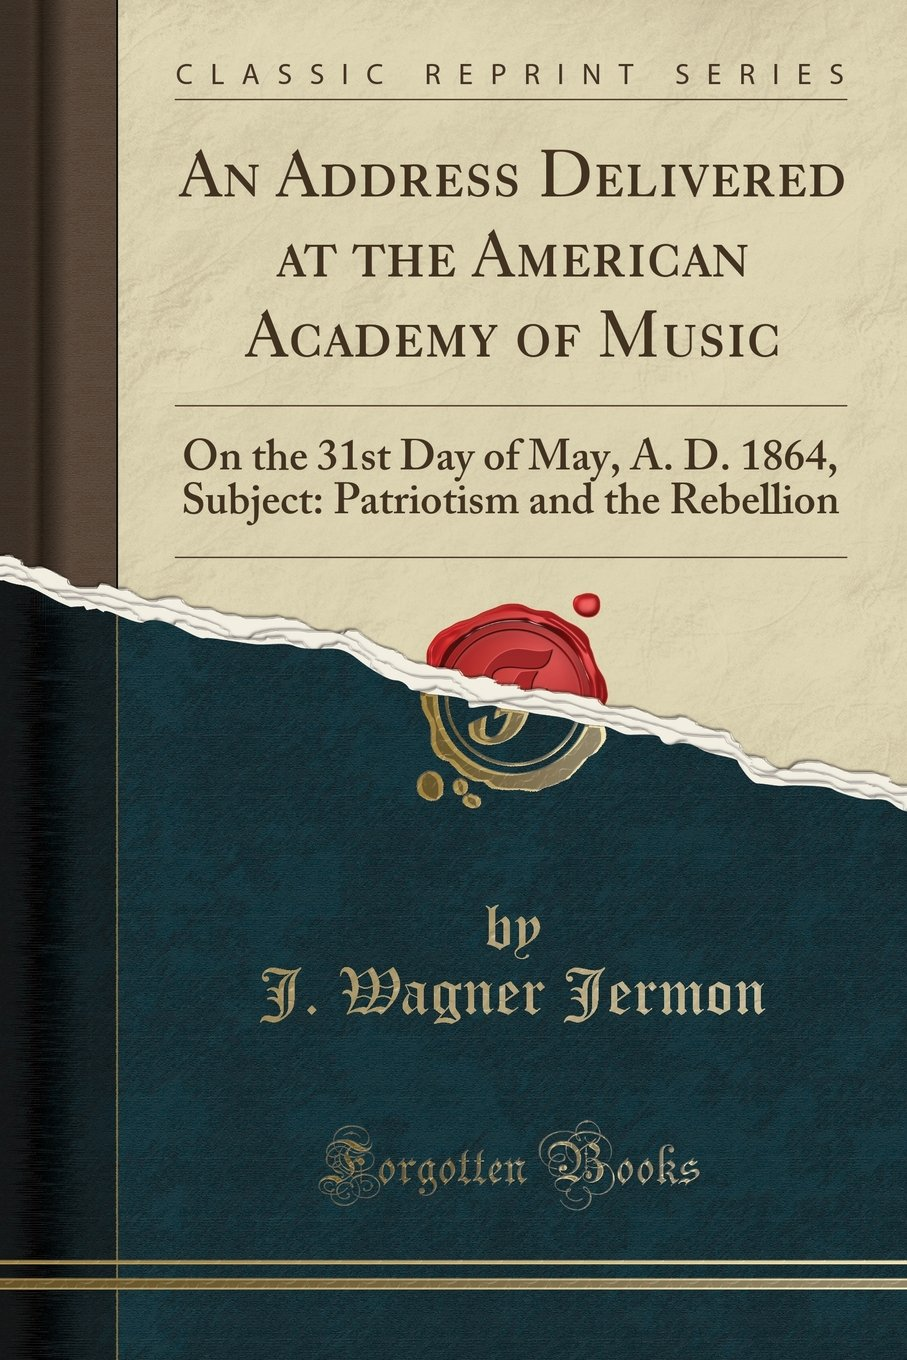 Download An Address Delivered at the American Academy of Music: On the 31st Day of May, A. D. 1864, Subject: Patriotism and the Rebellion (Classic Reprint) PDF